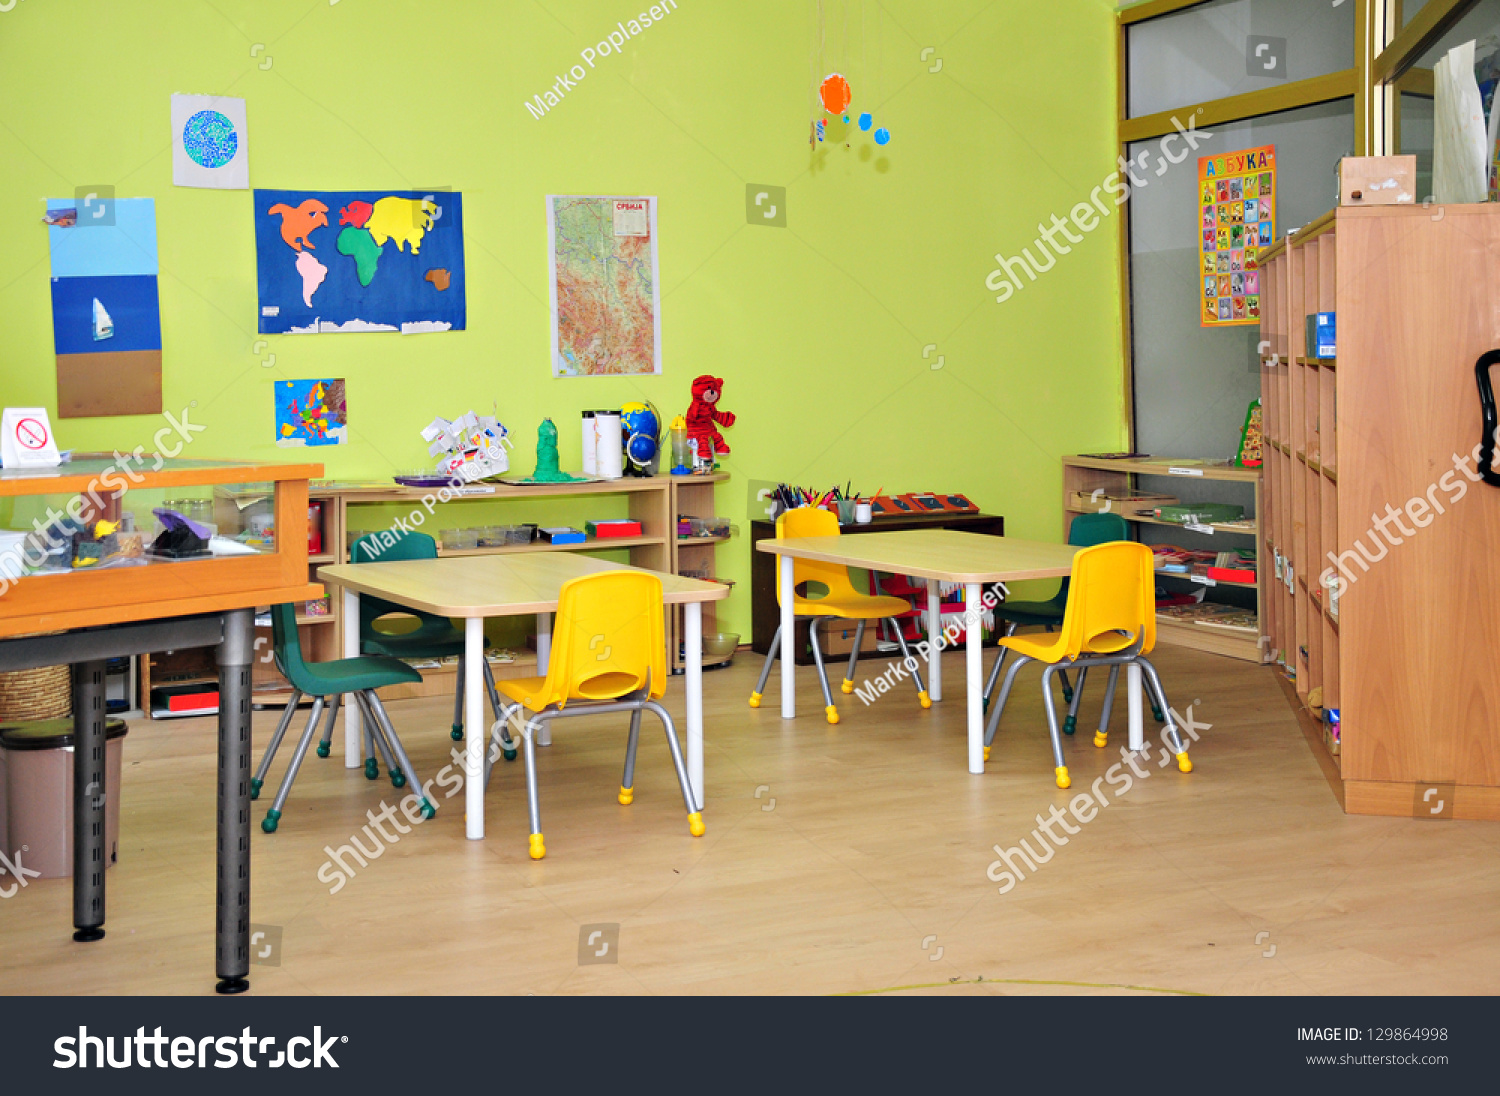 Worksheet Preschool Kindergarten kindergarten preschool classroom interior stock photo 129864998 interior